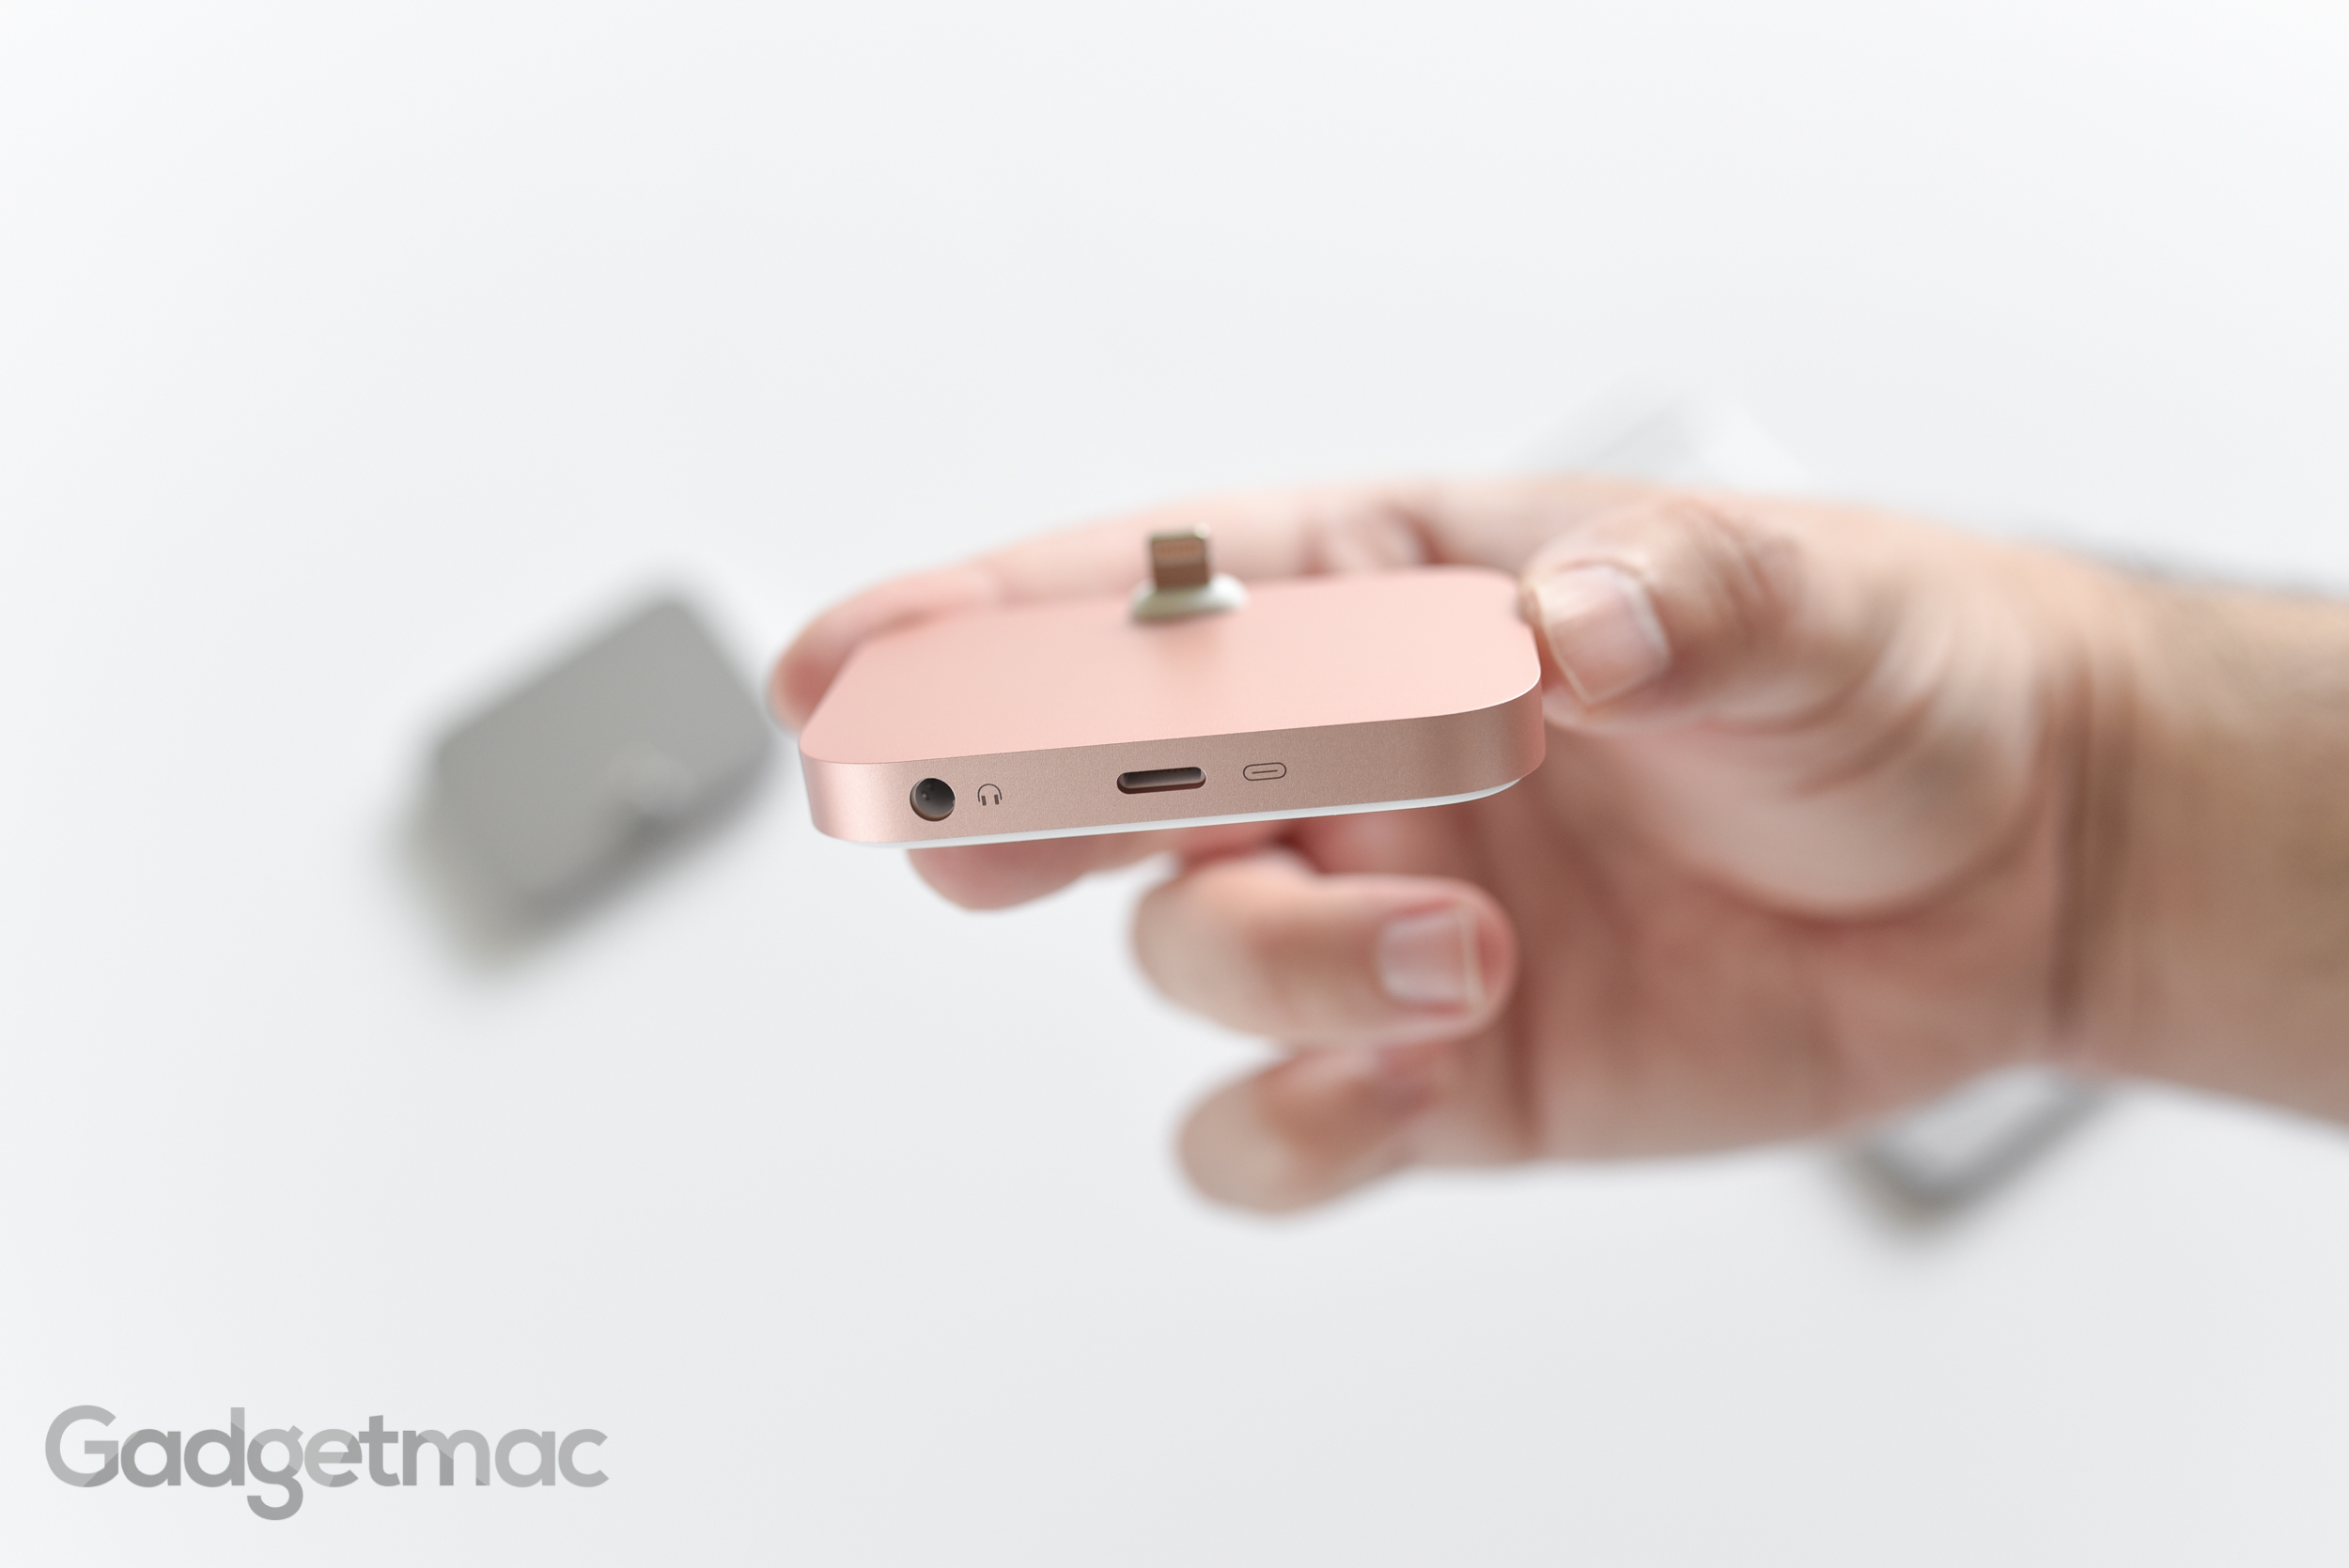 apple-aluminum-iphone-lightning-dock-ports-rose-gold.jpg